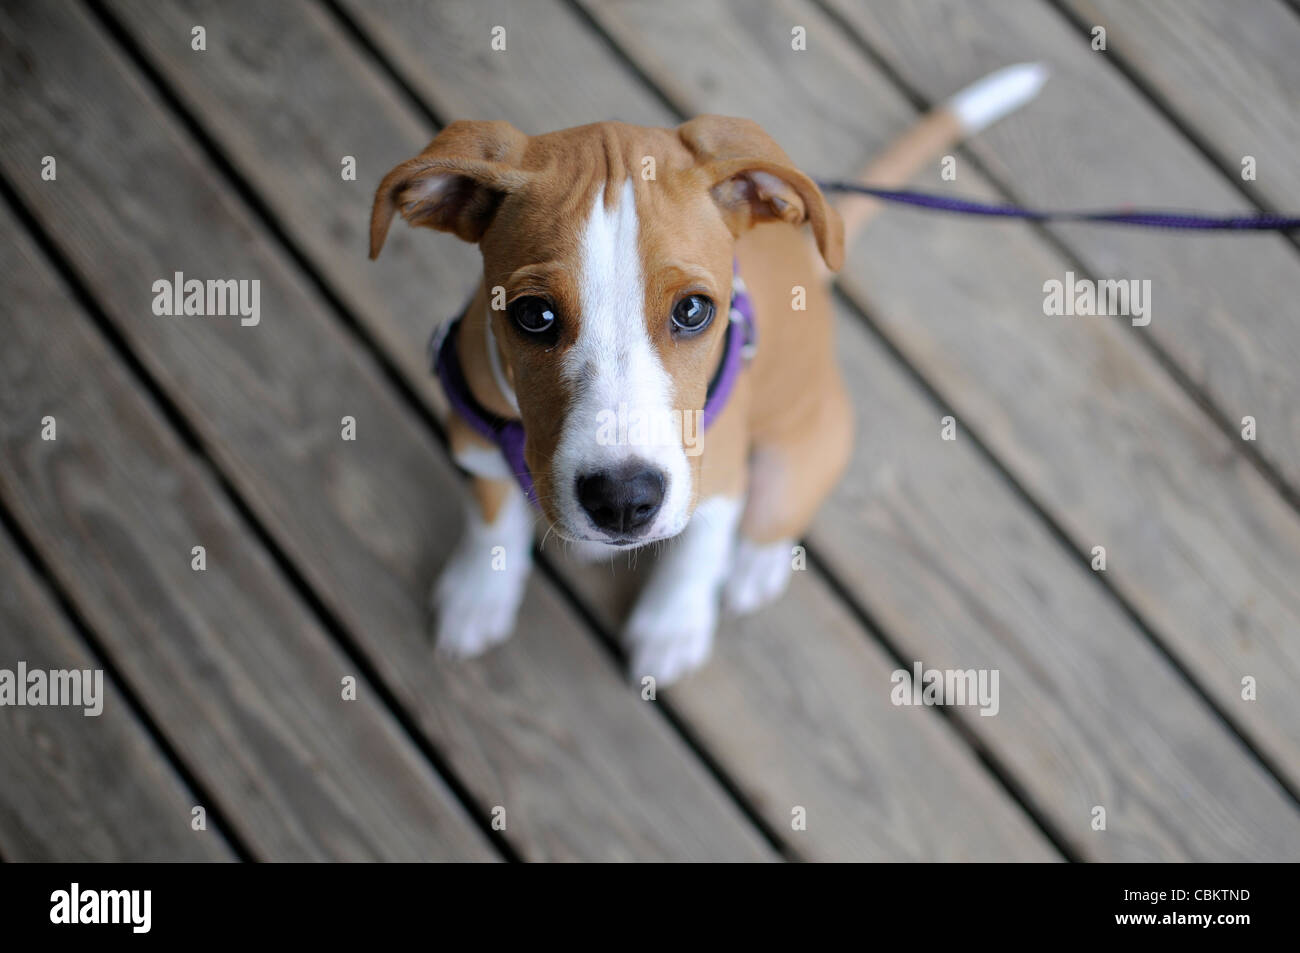 Cute 4 months old dog tied in the door of a beach house - Stock Image